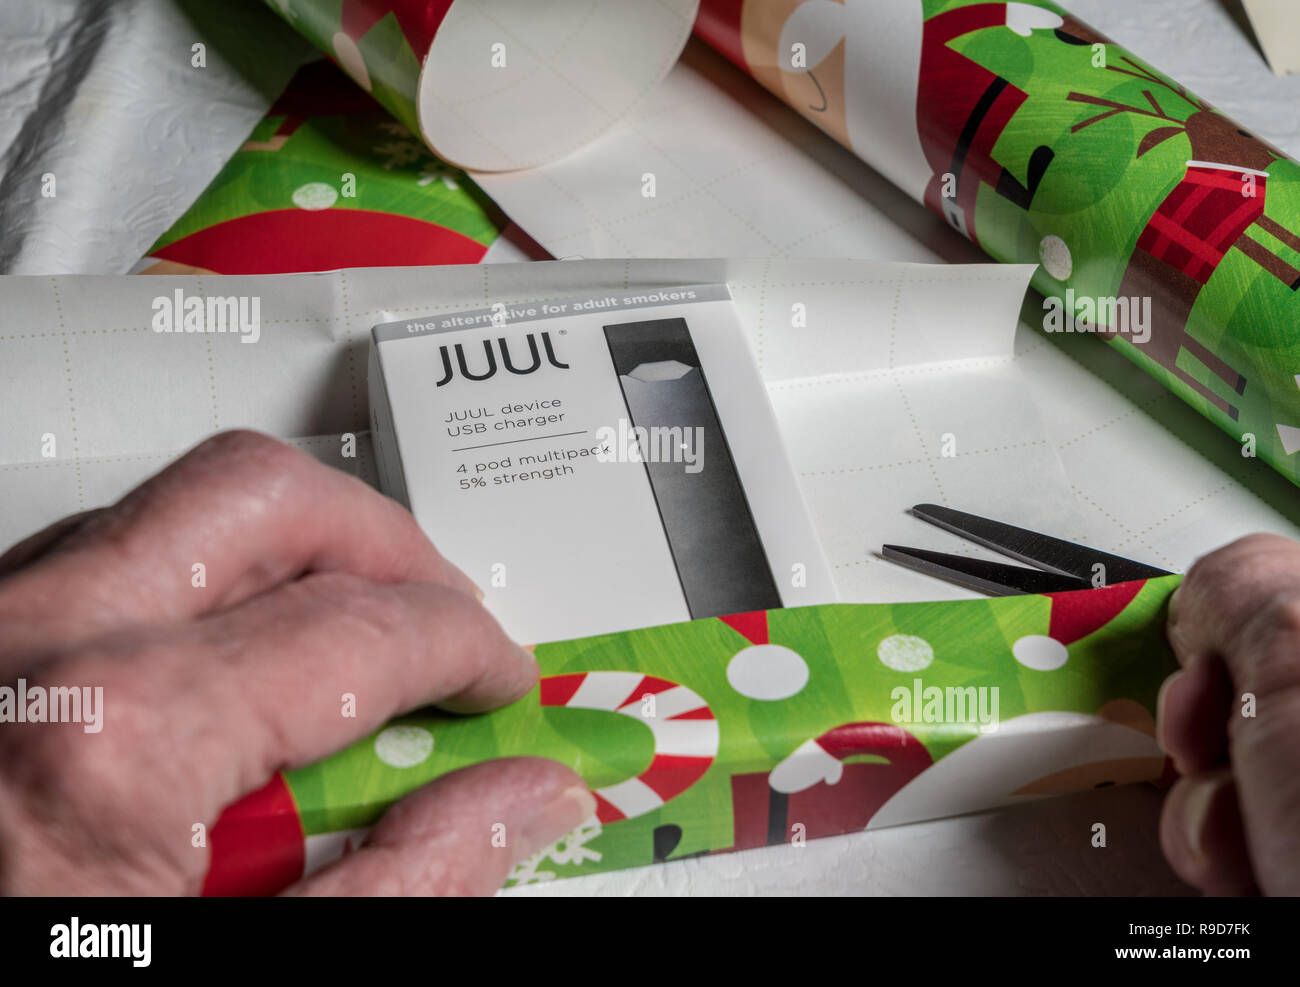 Juul Device Stock Photos & Juul Device Stock Images - Alamy